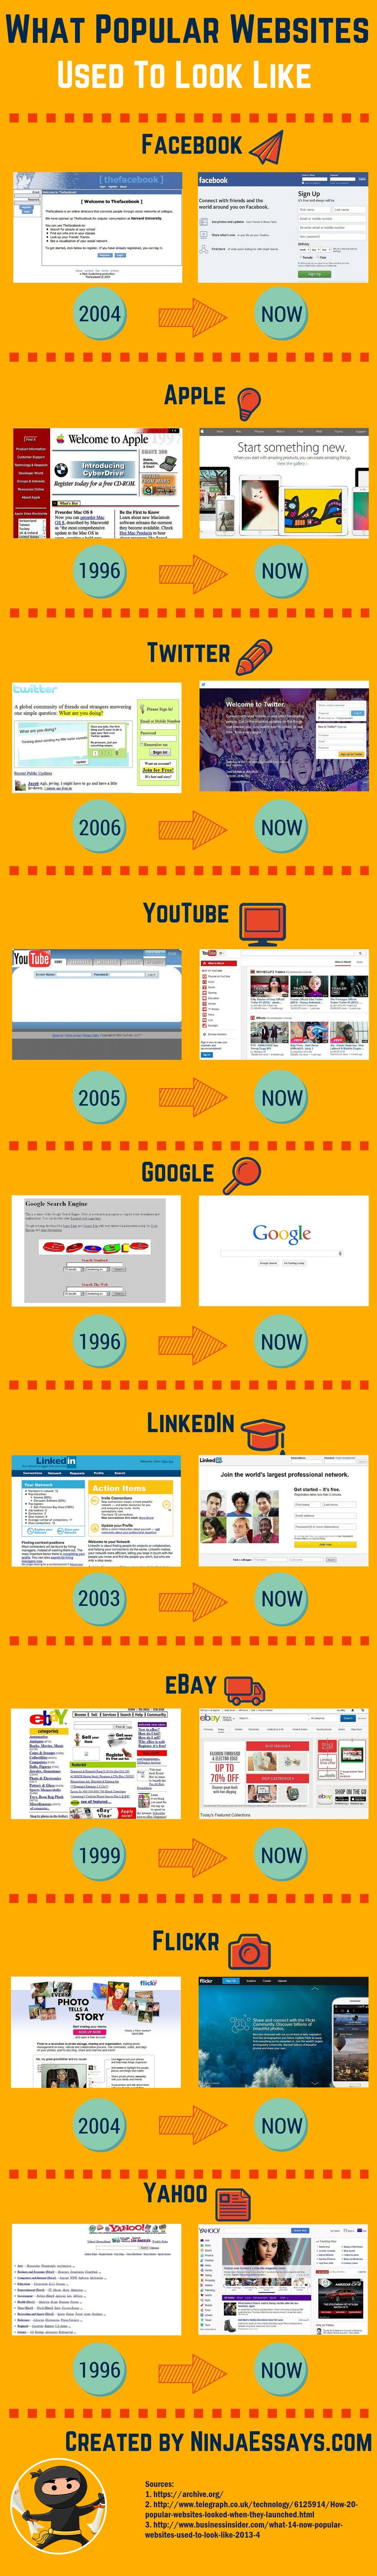 The First and Current Appearance of Popular Websites